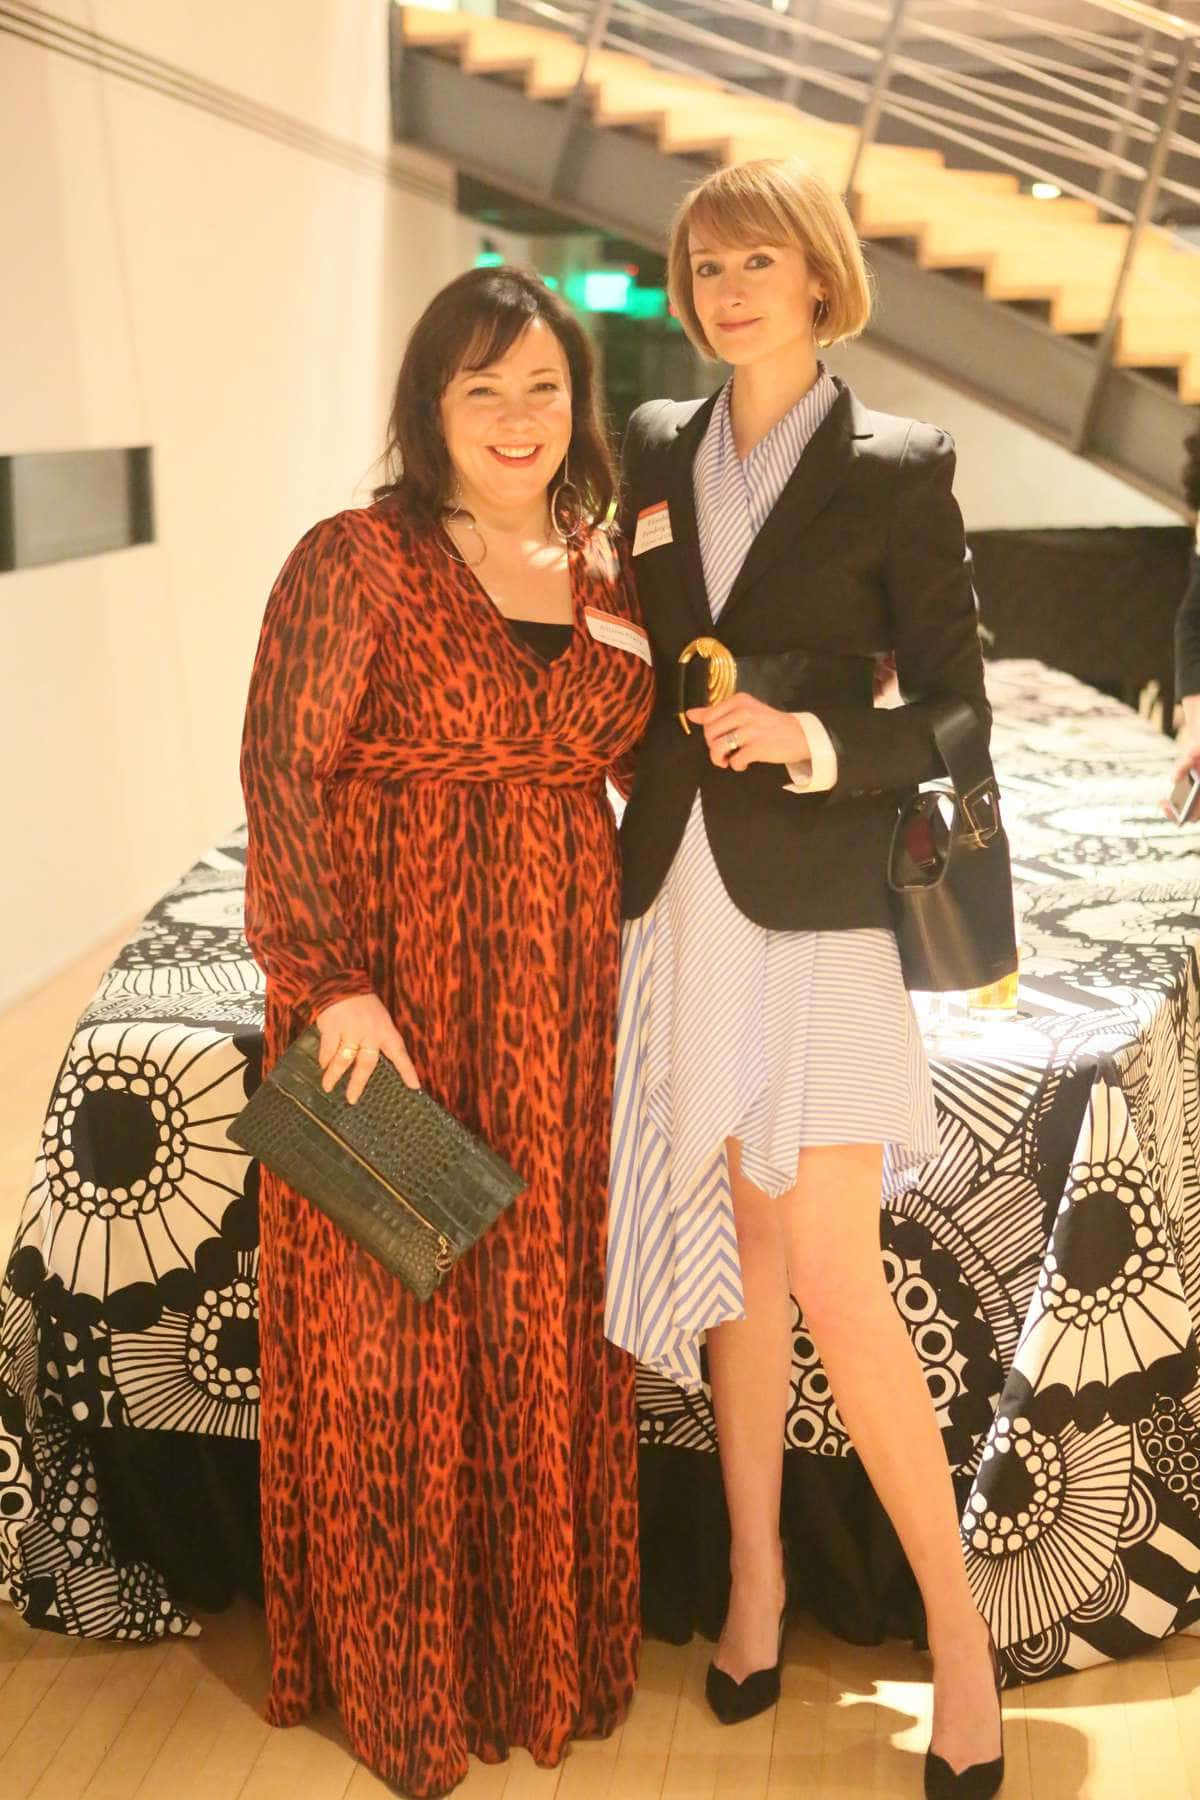 Wardrobe Oxygen and District of Chic at the Embassy of Finland for a CARE Global Leaders Network event